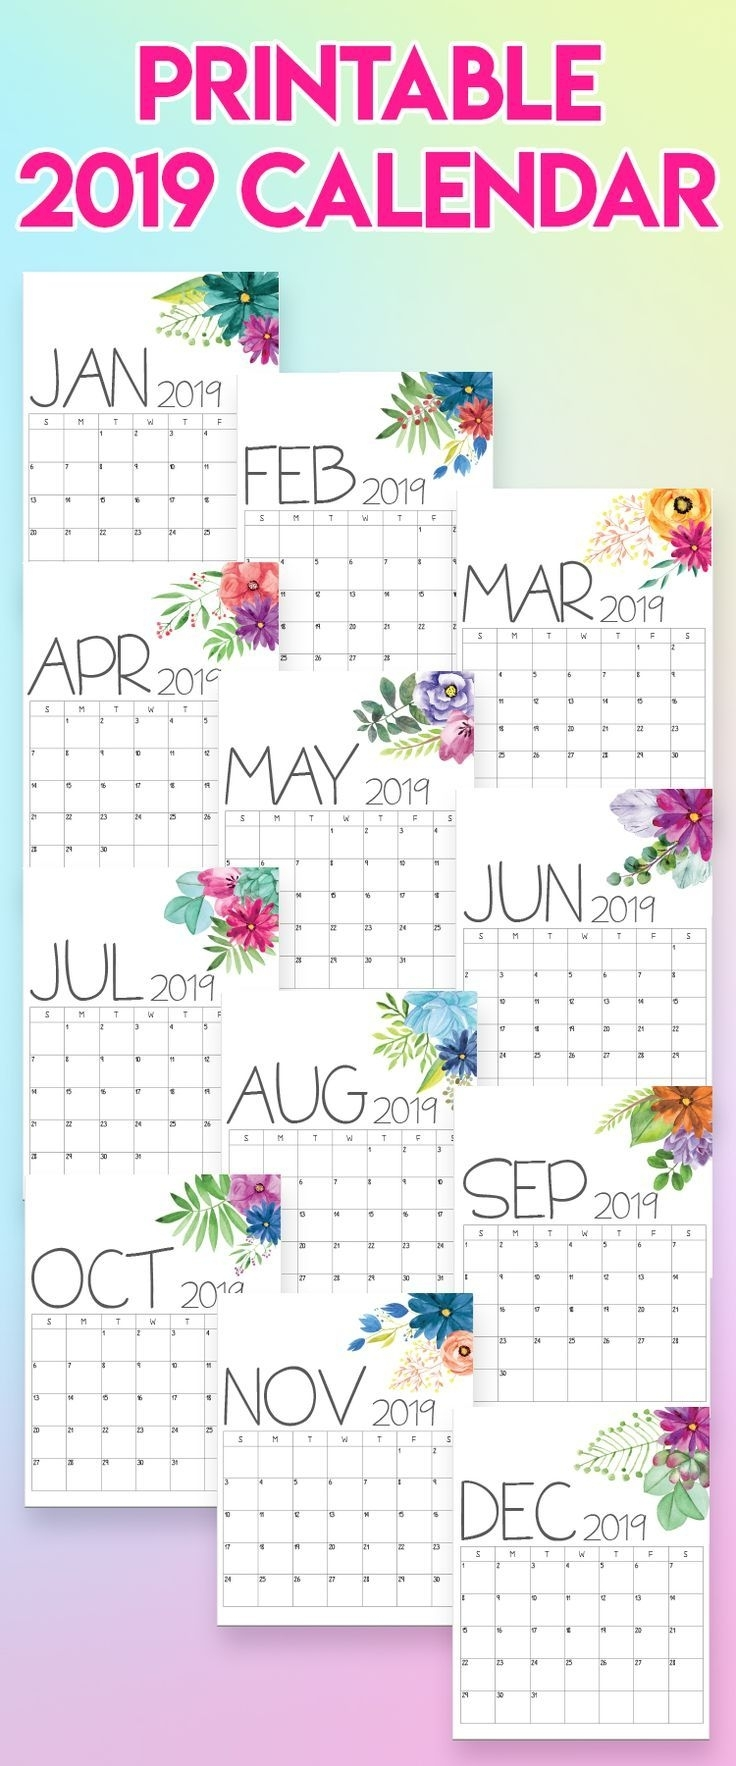 2020 Printable Calendars And Planners | Free Printable